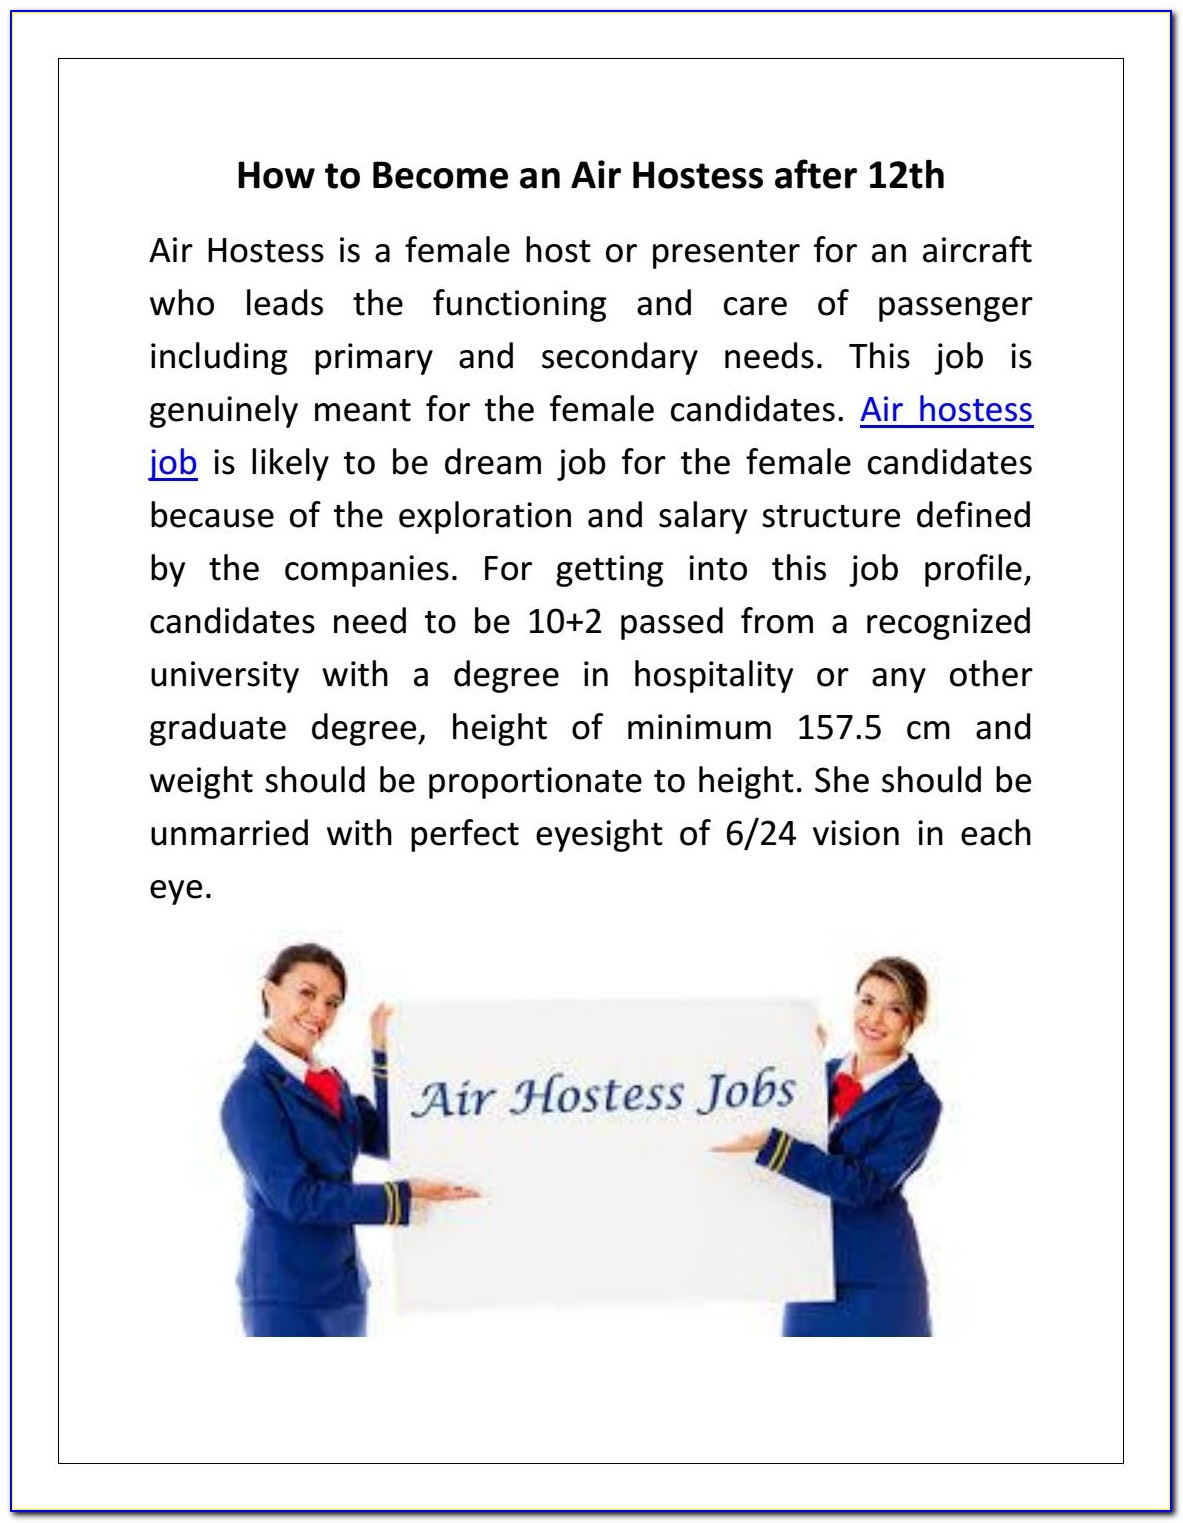 How To Apply For Air Hostess Jobs After 12th